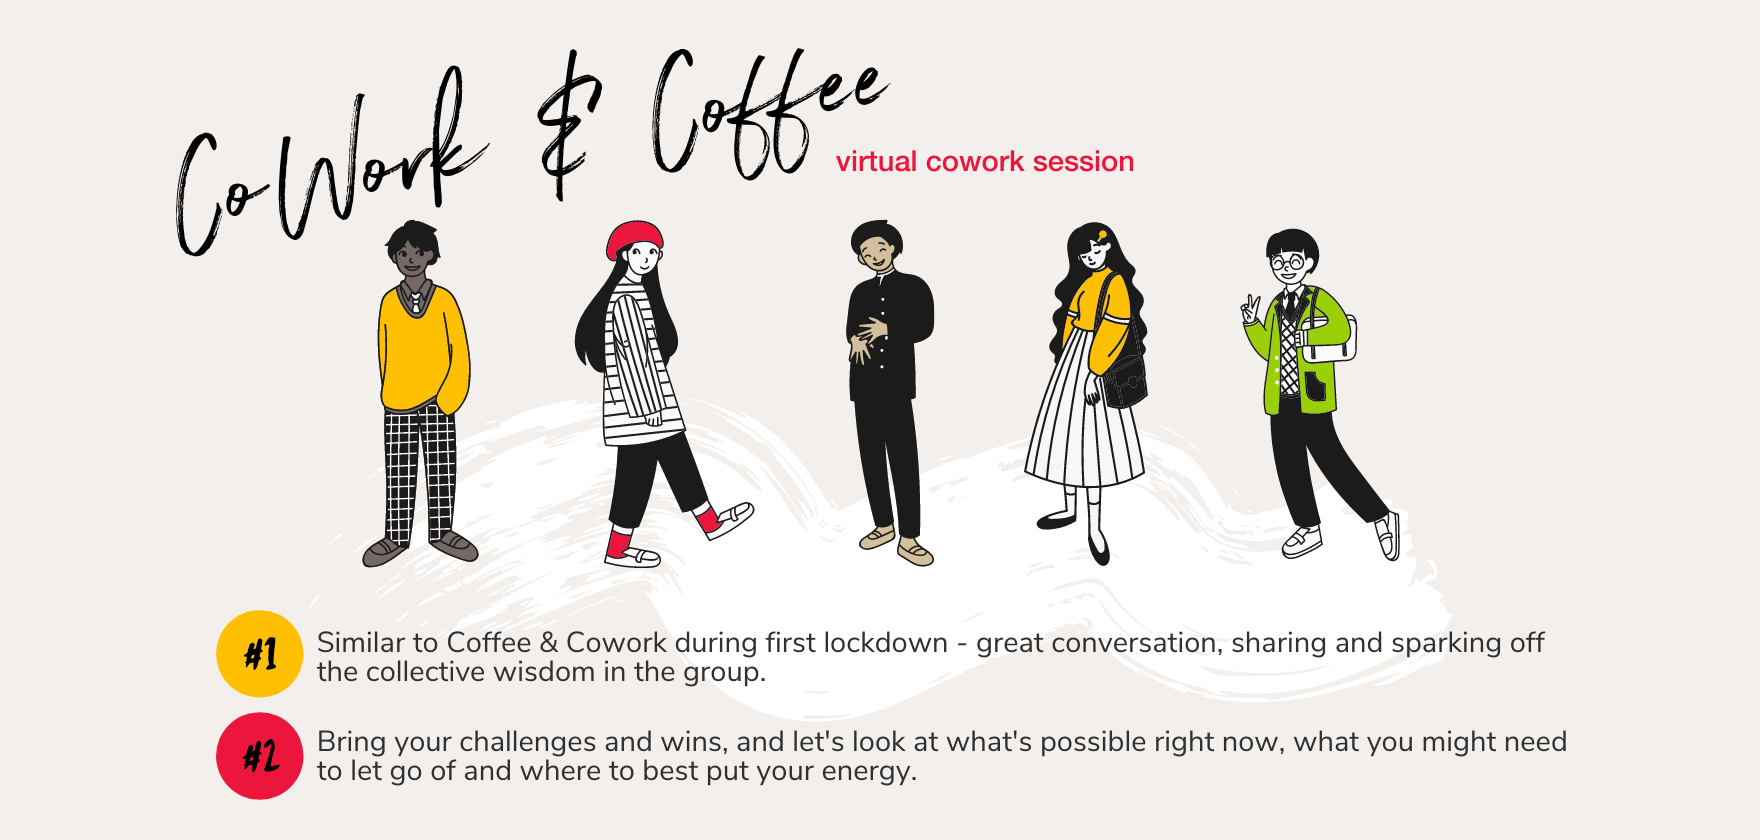 cowork and coffee